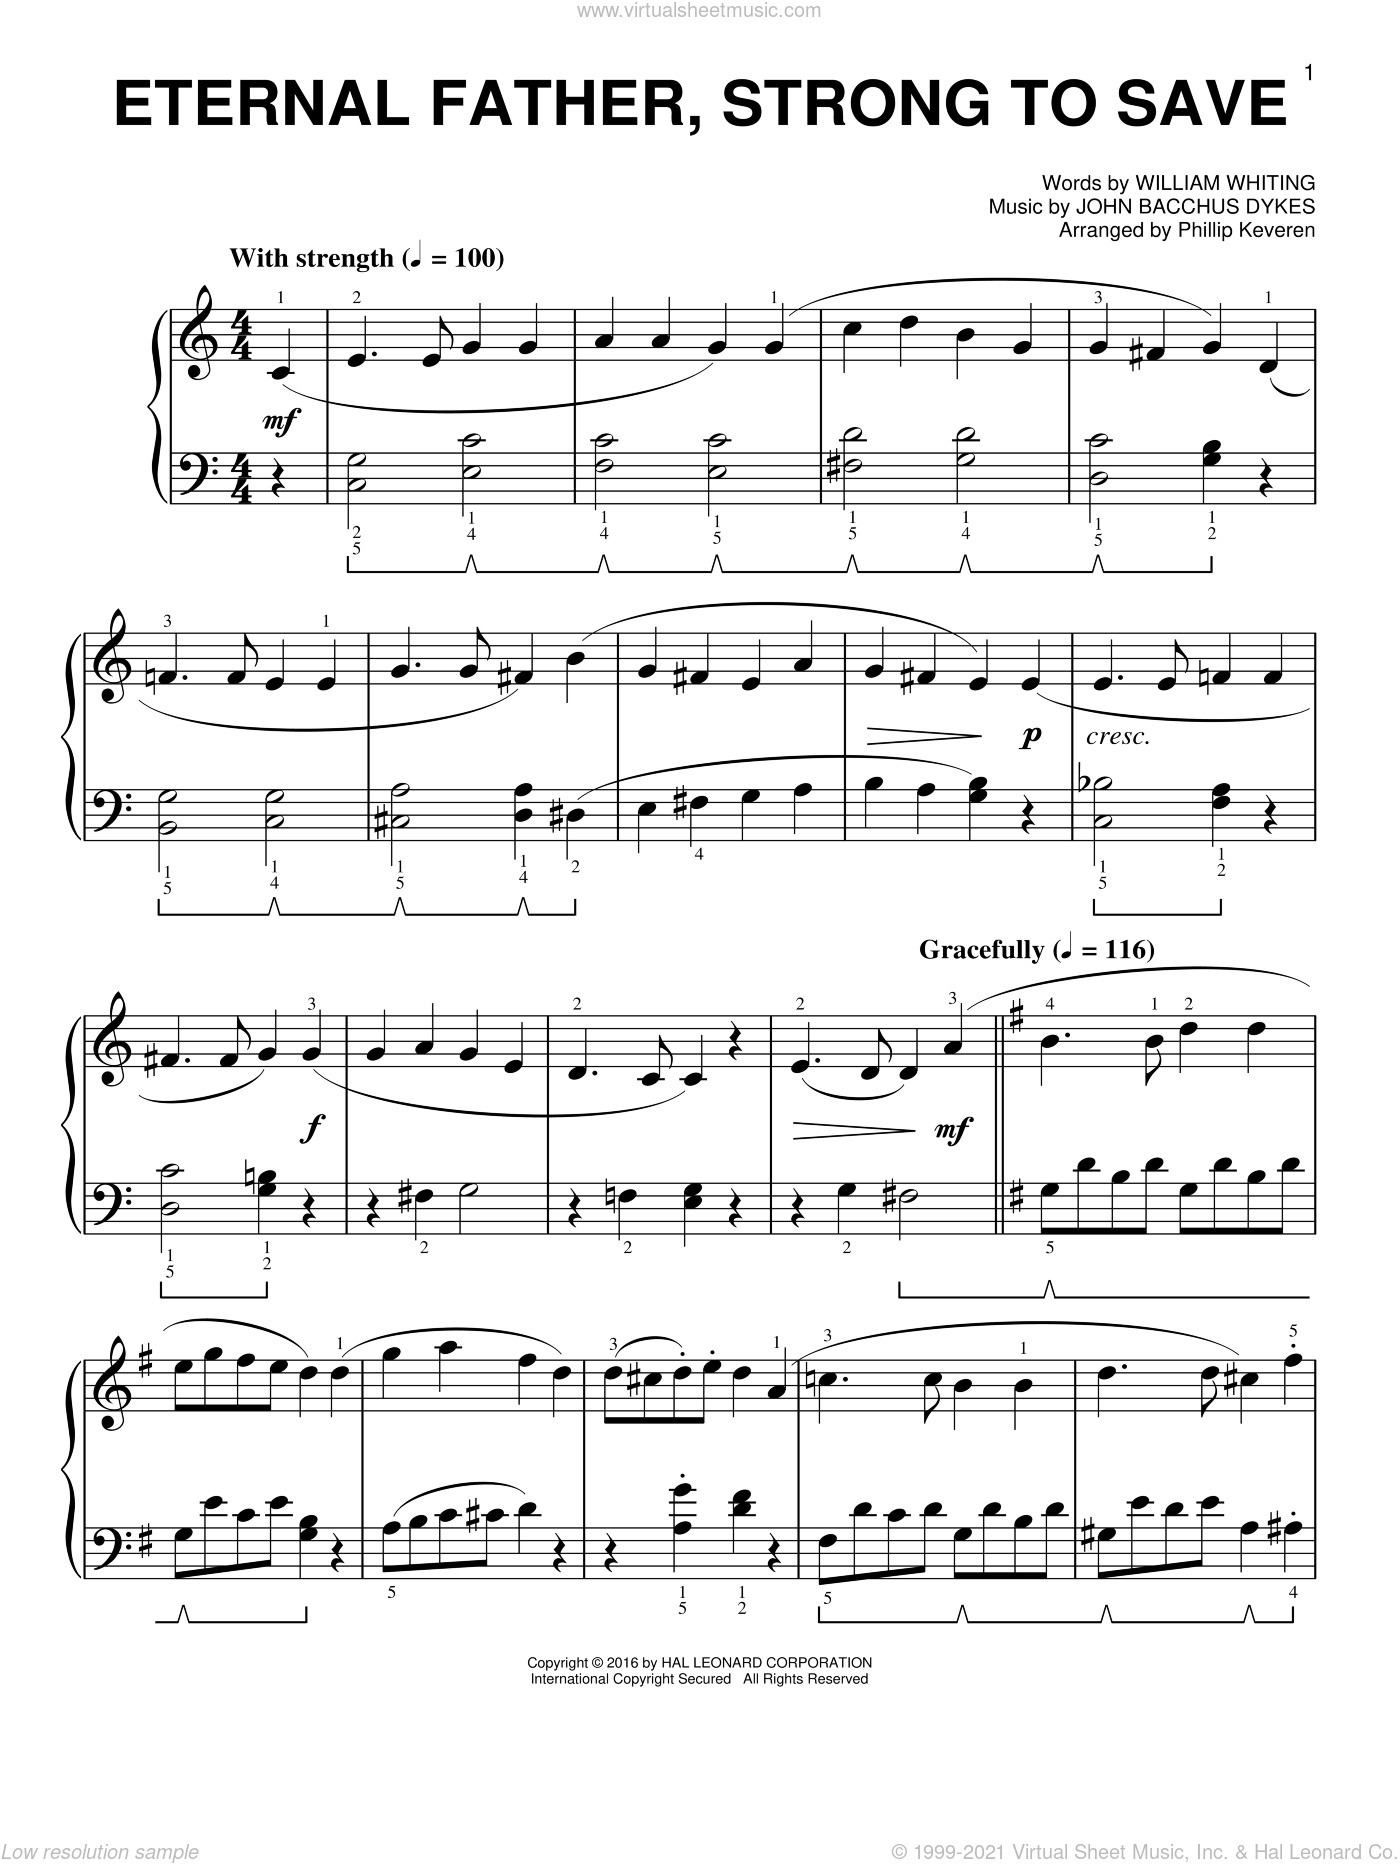 Eternal Father, Strong To Save [Classical version] (arr. Phillip Keveren) sheet music for piano solo by John Bacchus Dykes, Phillip Keveren and William Whiting, easy skill level